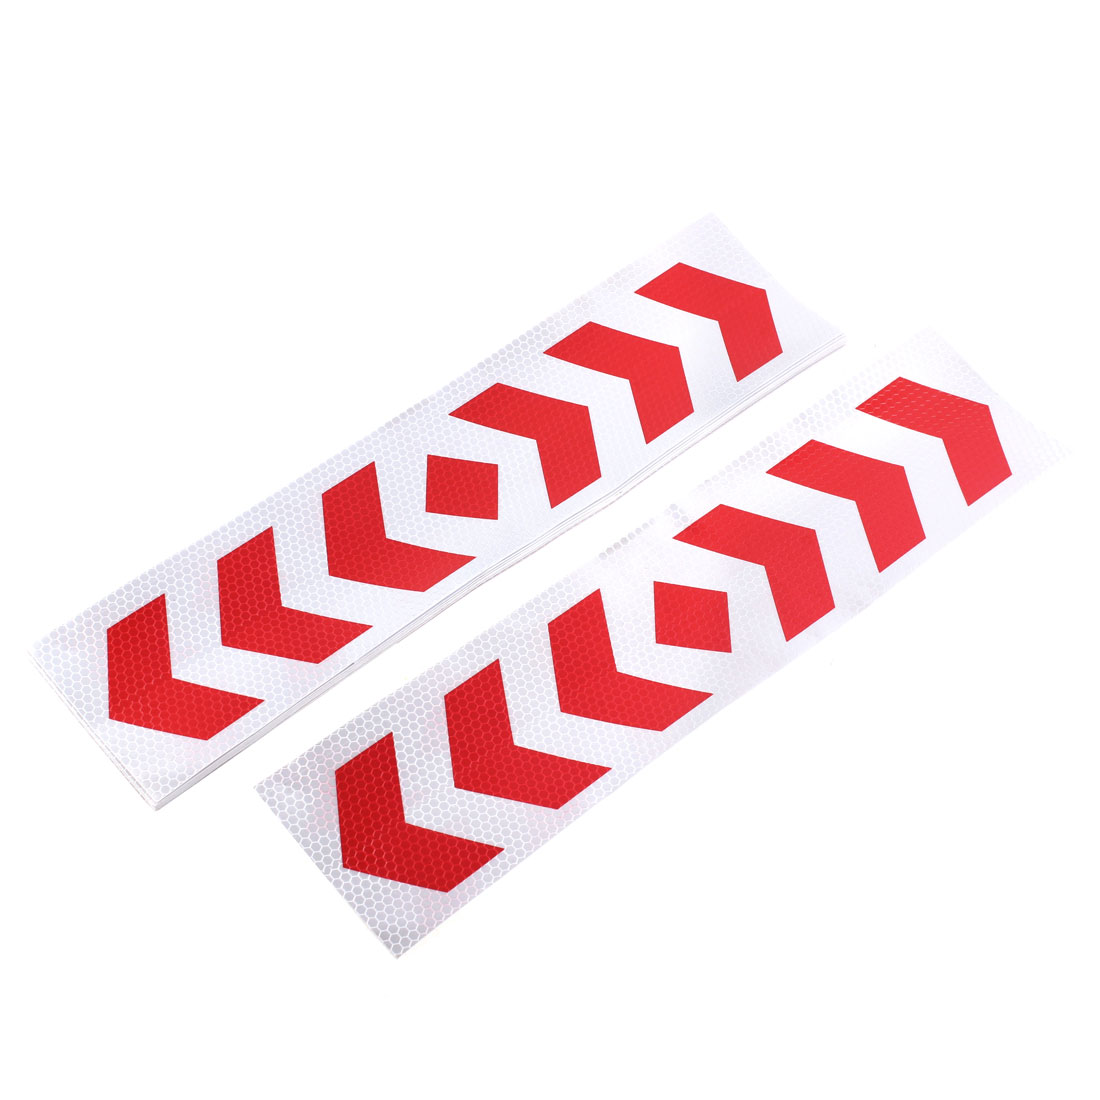 40cm x 10cm Red Sliver Tone Plastic Car Reflective Decal Stickers 10pcs